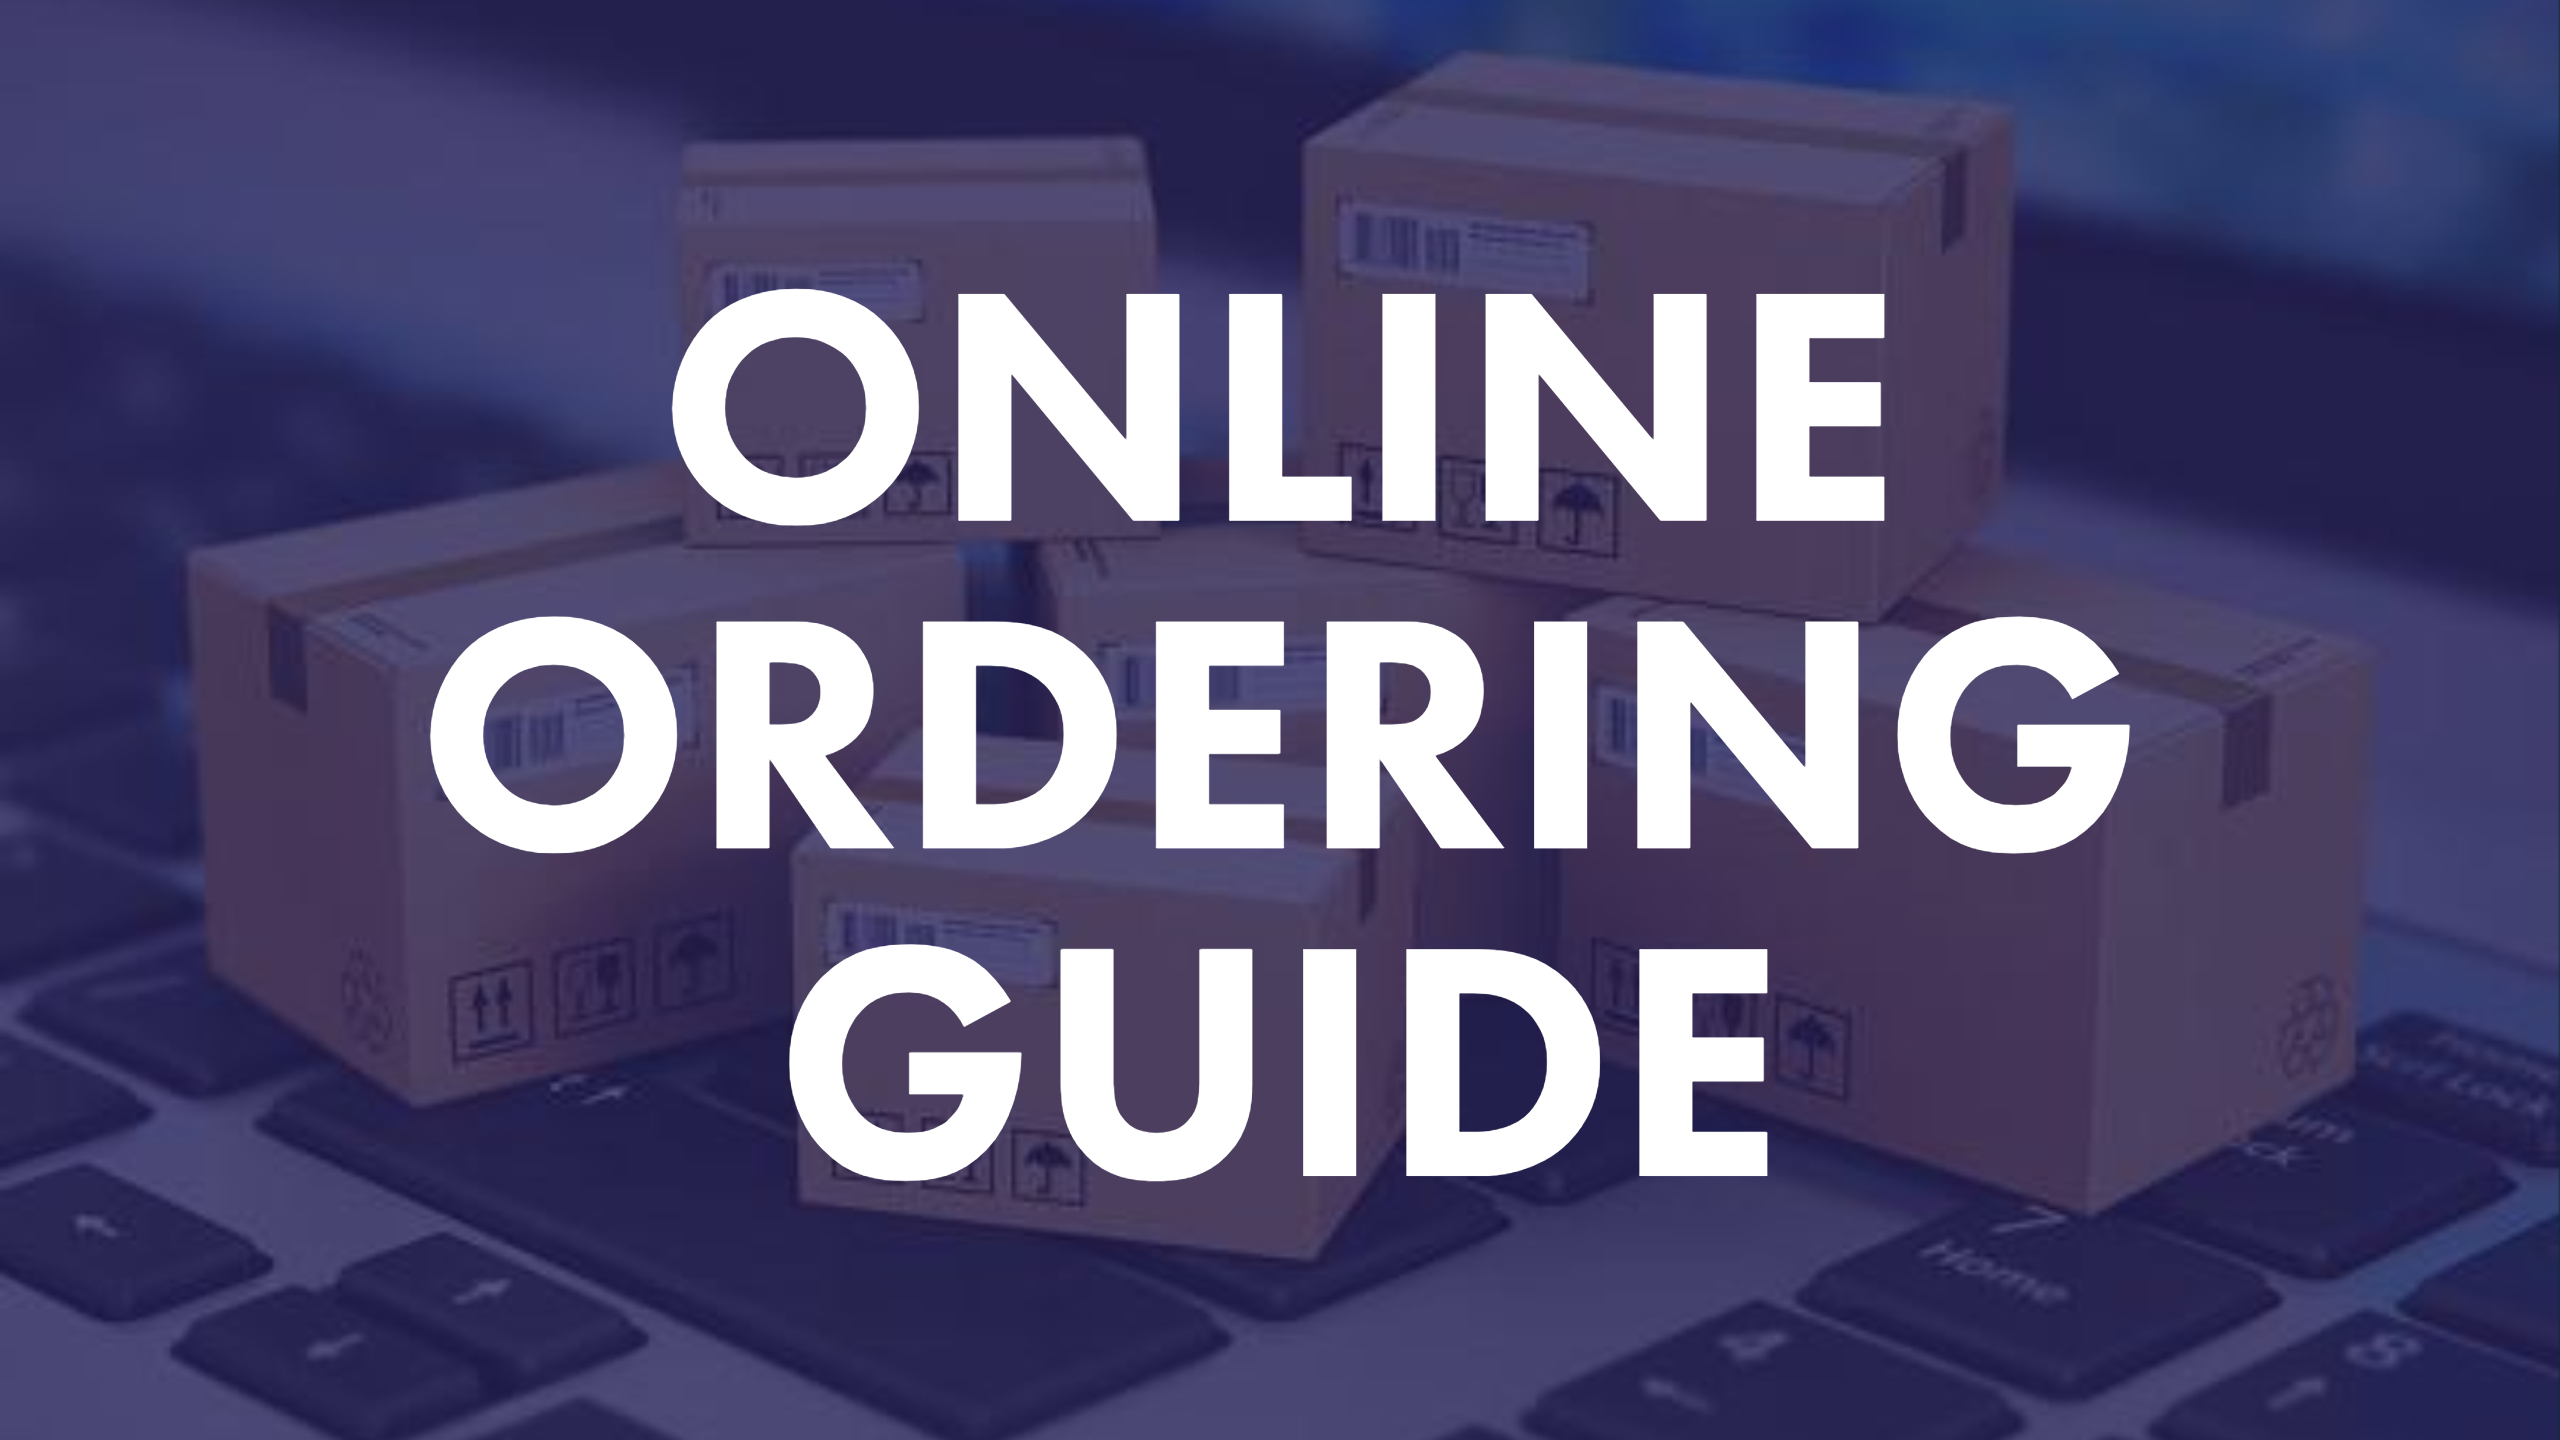 Online Ordering Guide